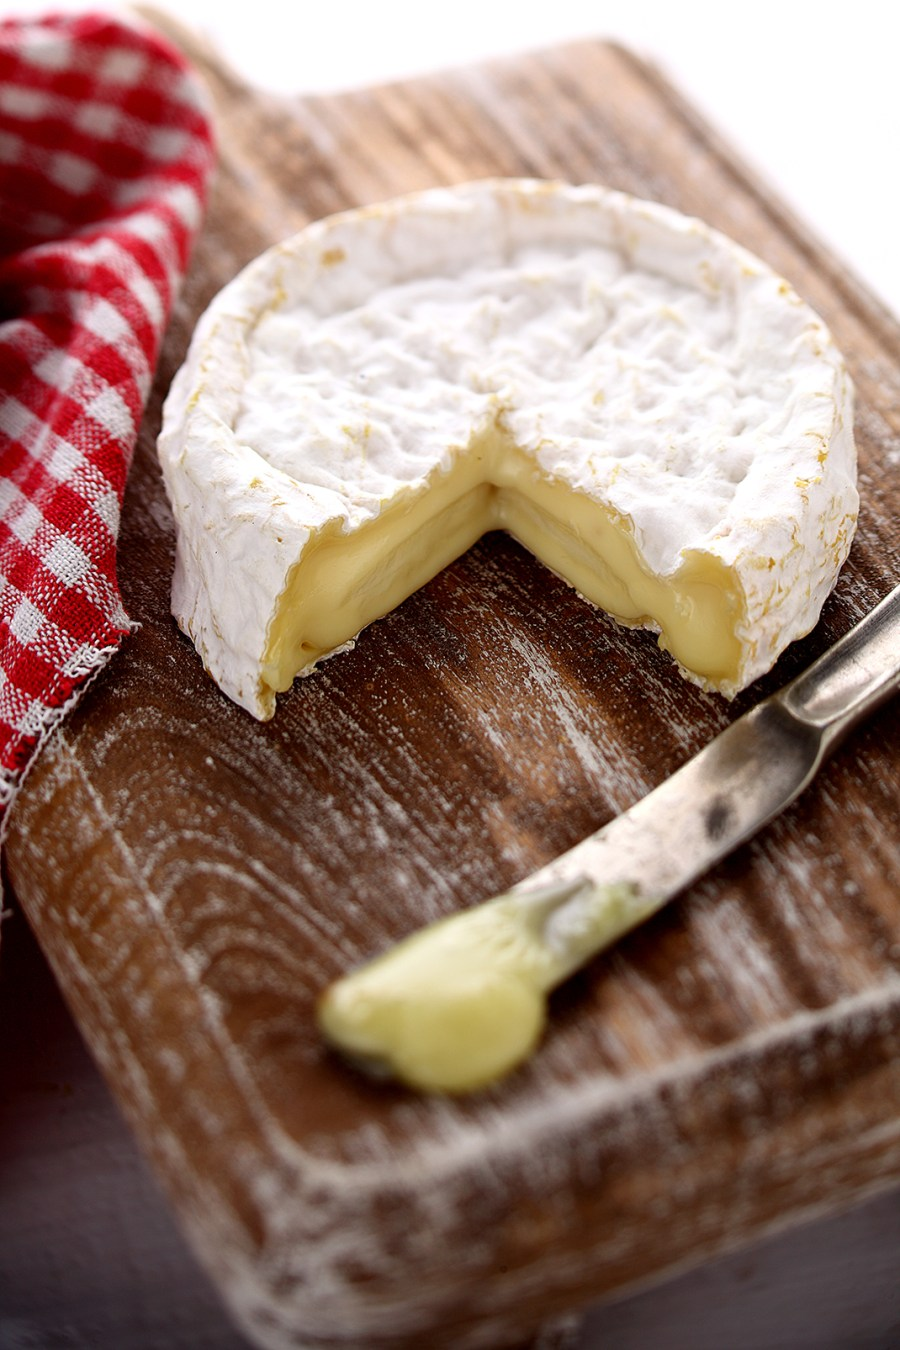 Camembert - courtesy The Spotted Cow Fromagerie